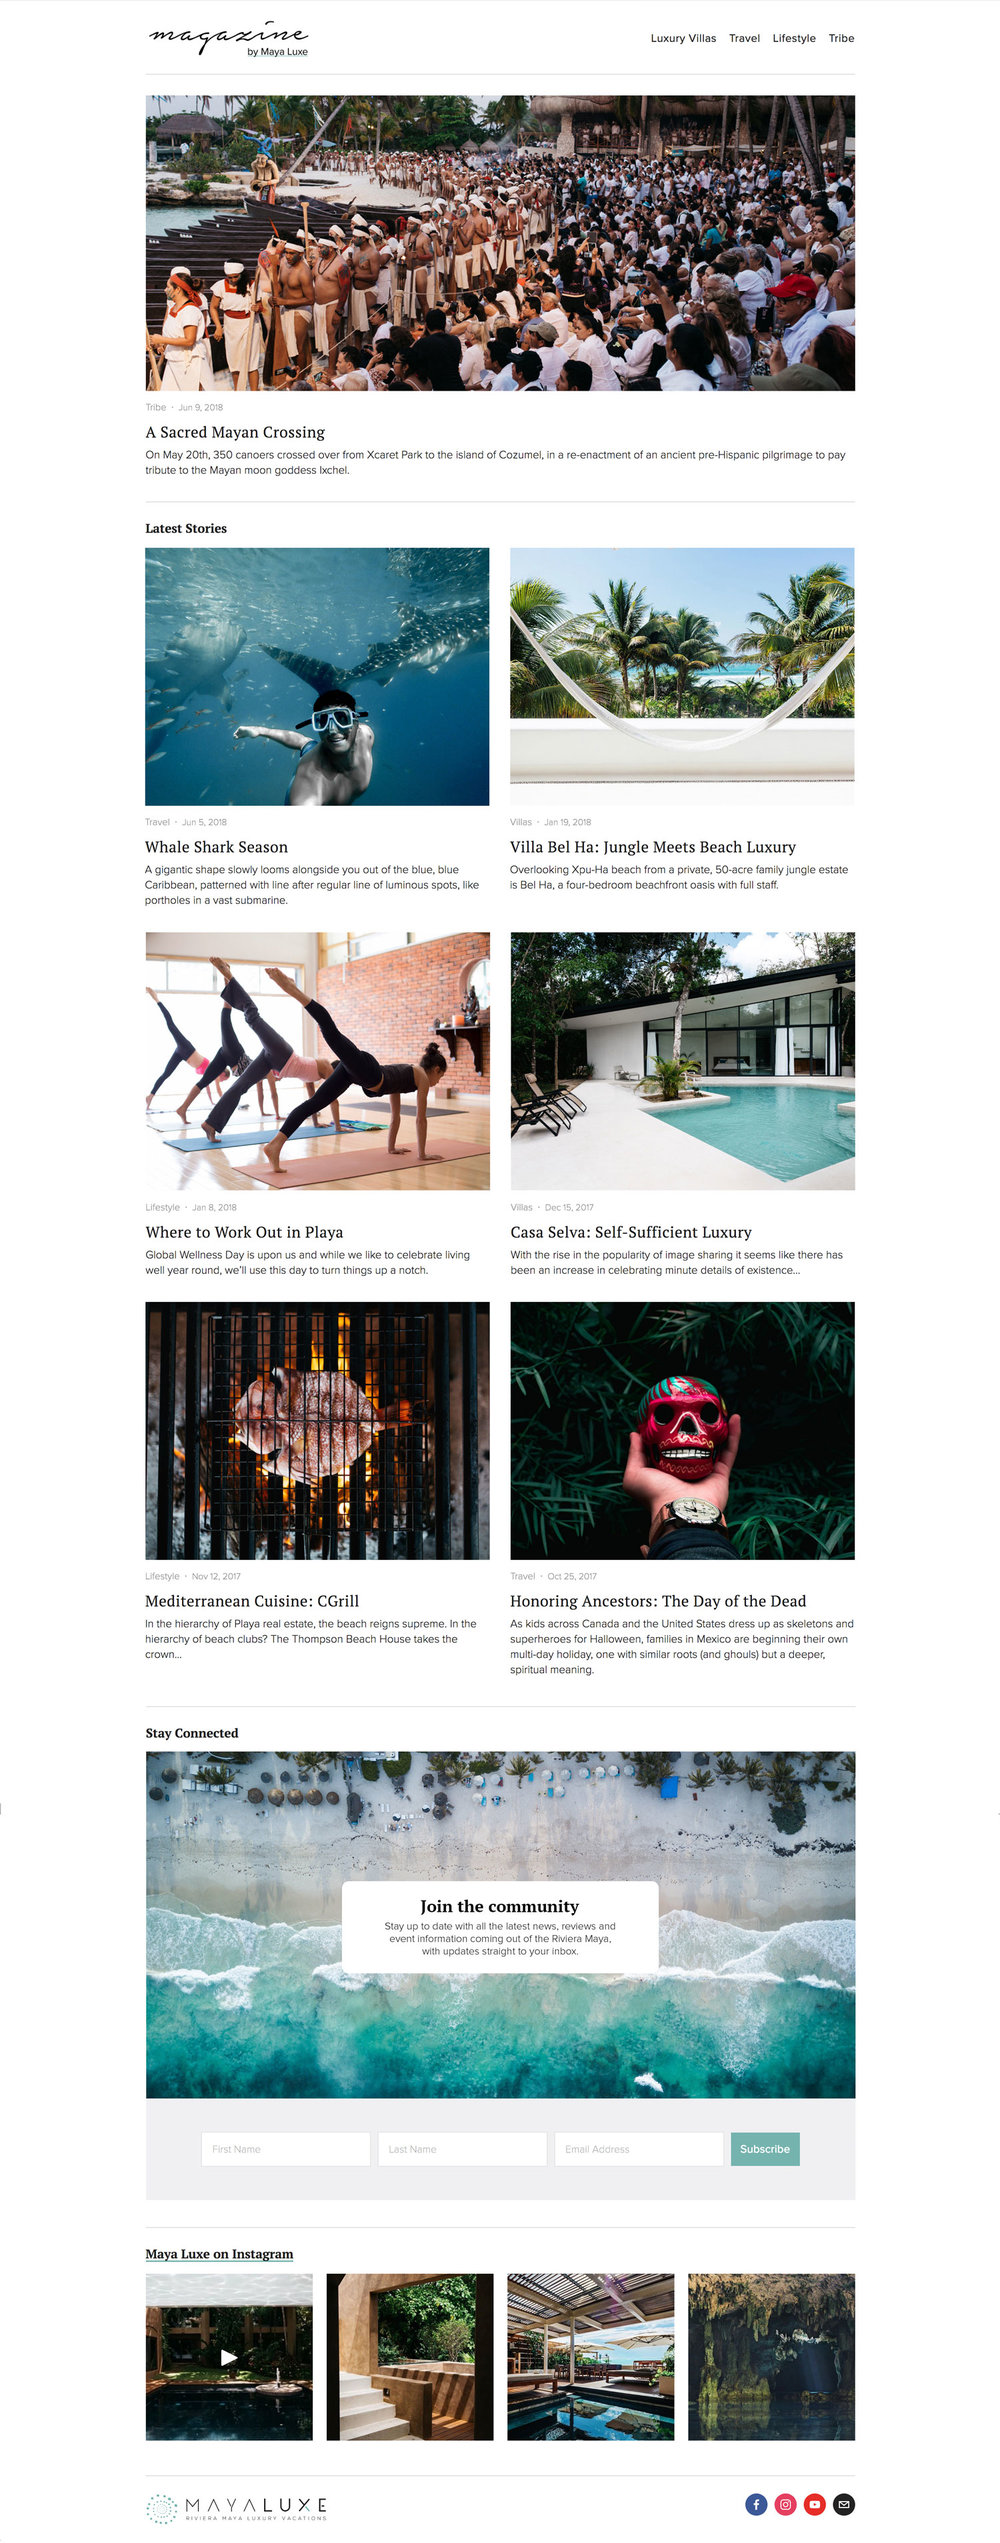 The_Ink_Collective_Creative_Content_Agency_Paris_Sydney_Design_Editorial_Strategy_Web_Design_Photography_Maya_Luxe_Magazine_Riviera_Maya_Mexico_1.jpg